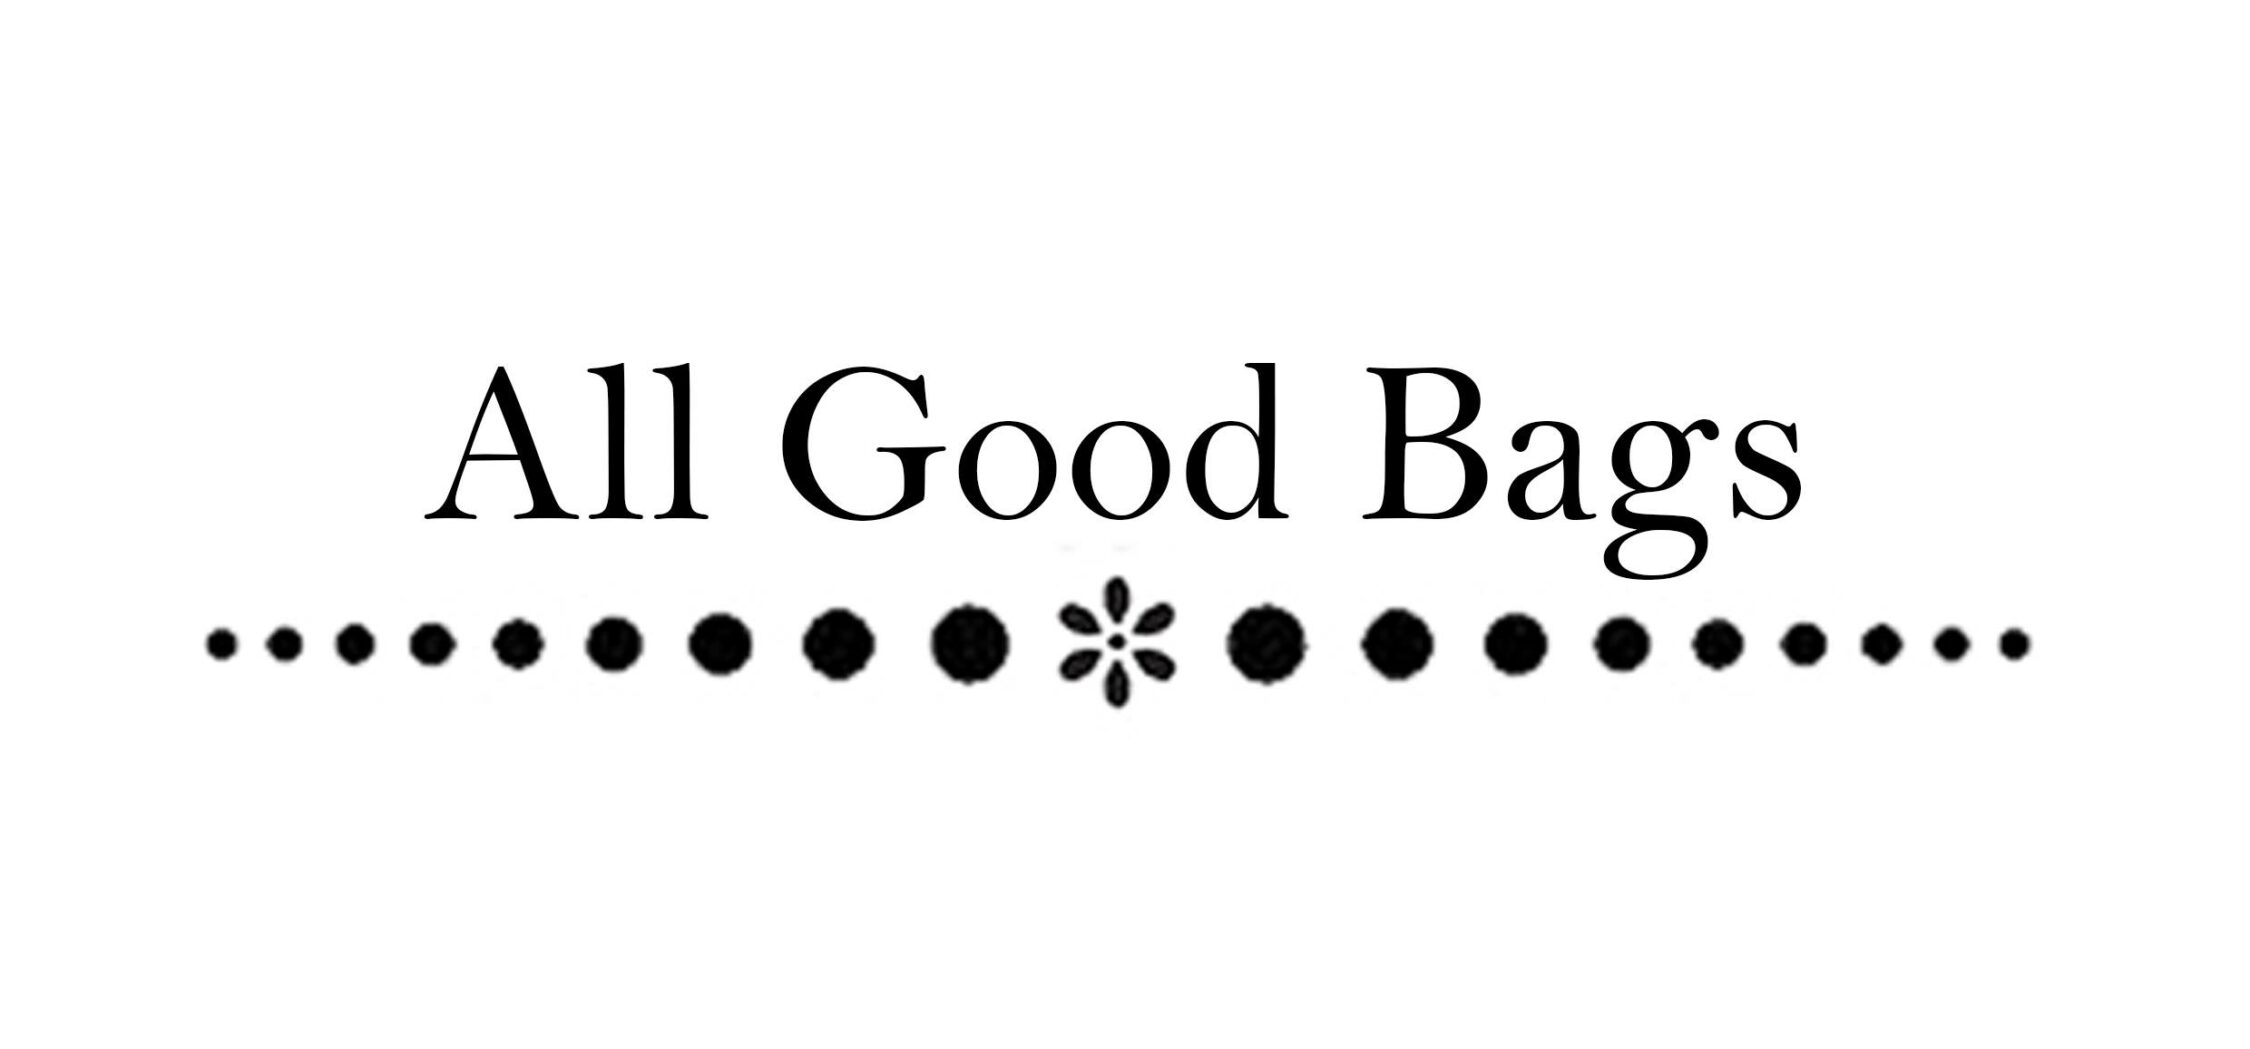 All Good Bags